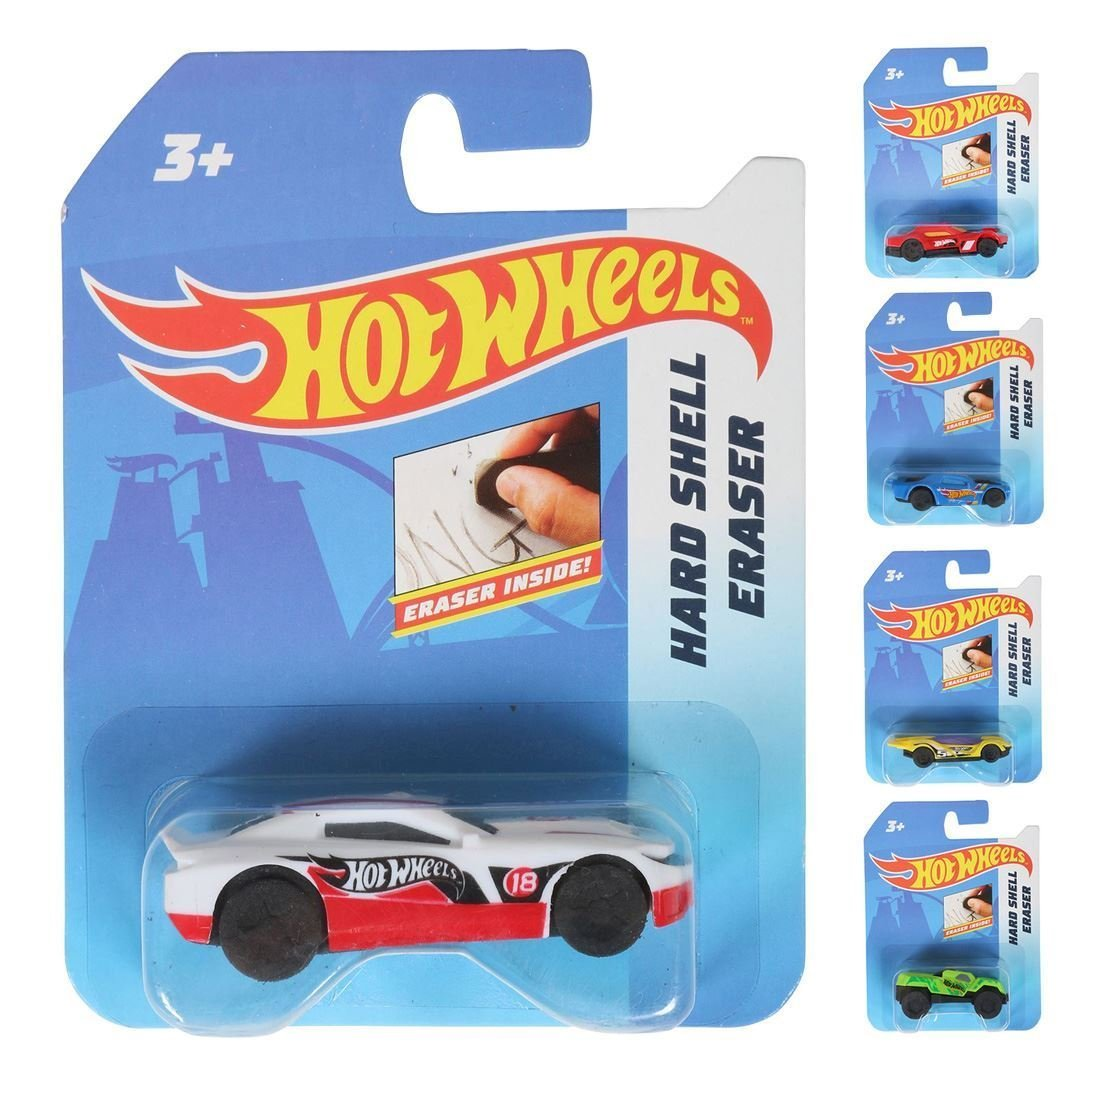 Confezione da 5 Hot Wheels auto hard shell con gommino interno 6 cm novità cancelleria Fun School Homework strofinare out Fast HOTWHEELS